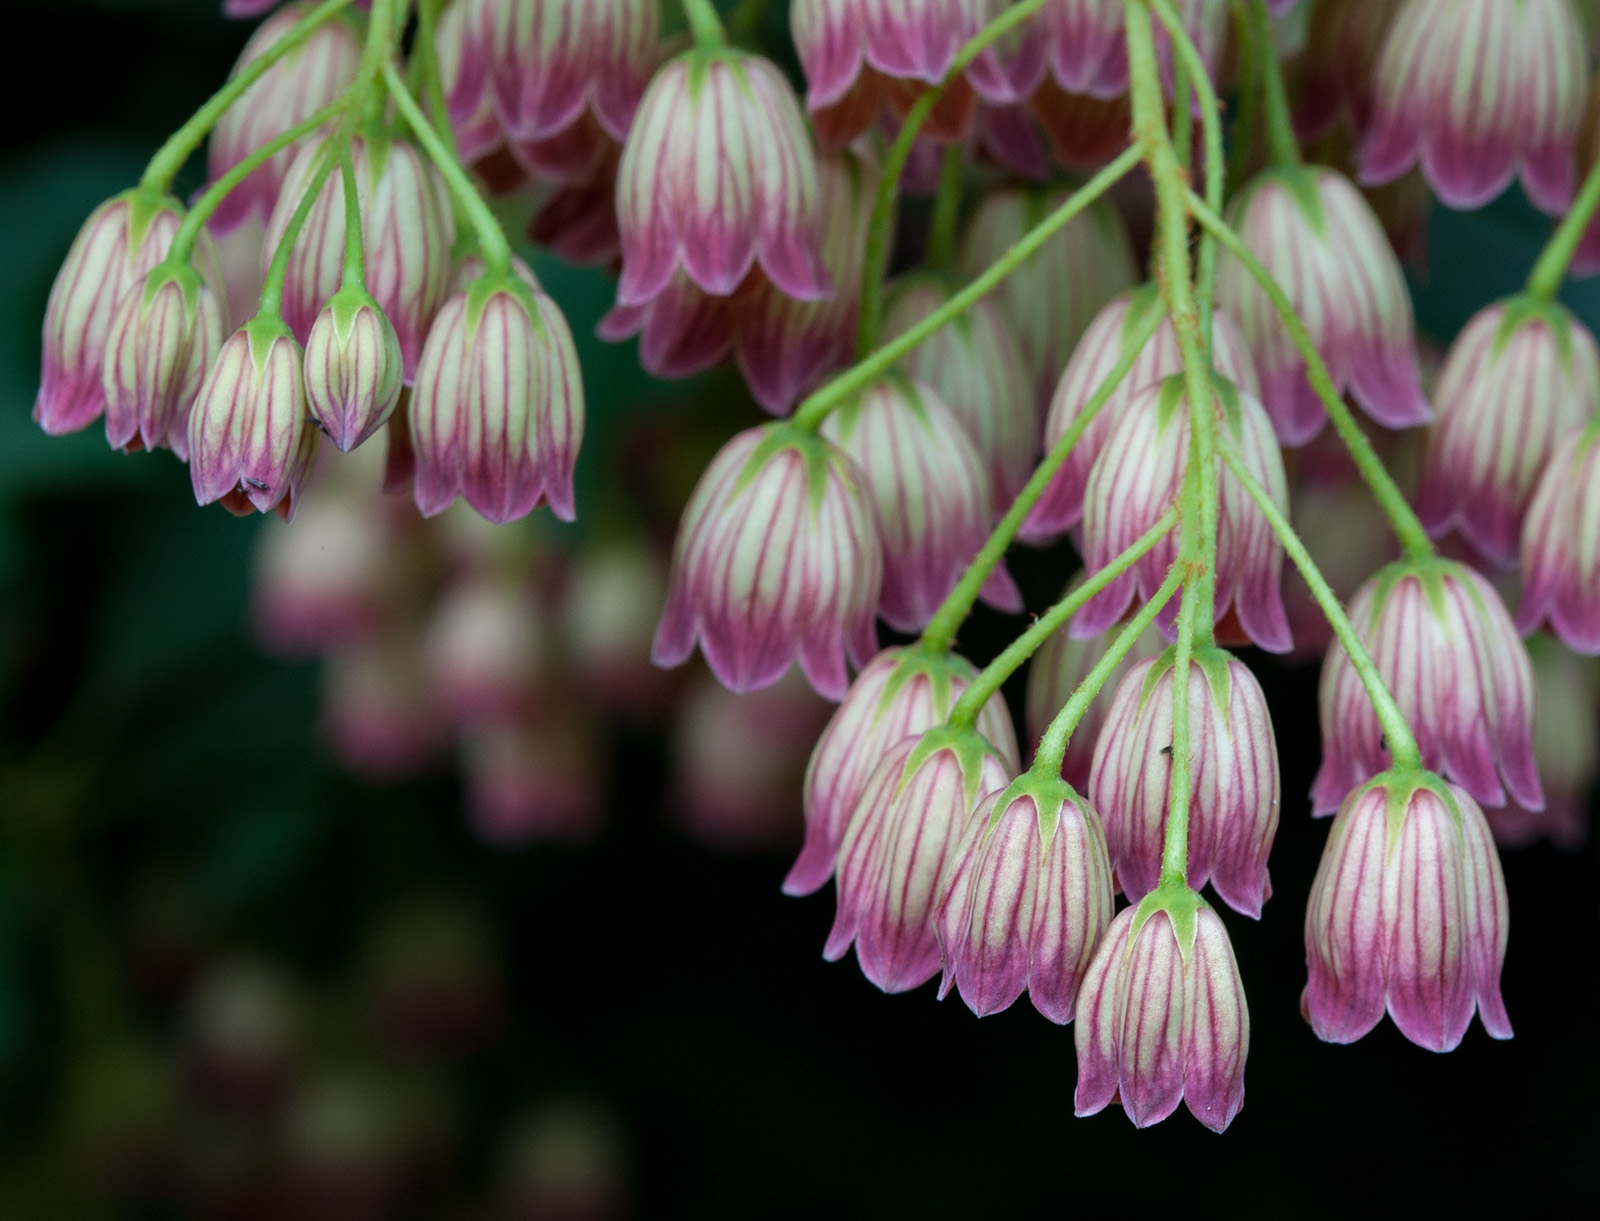 Close-up of <i>Enkianthus campanulatus</i> flowers